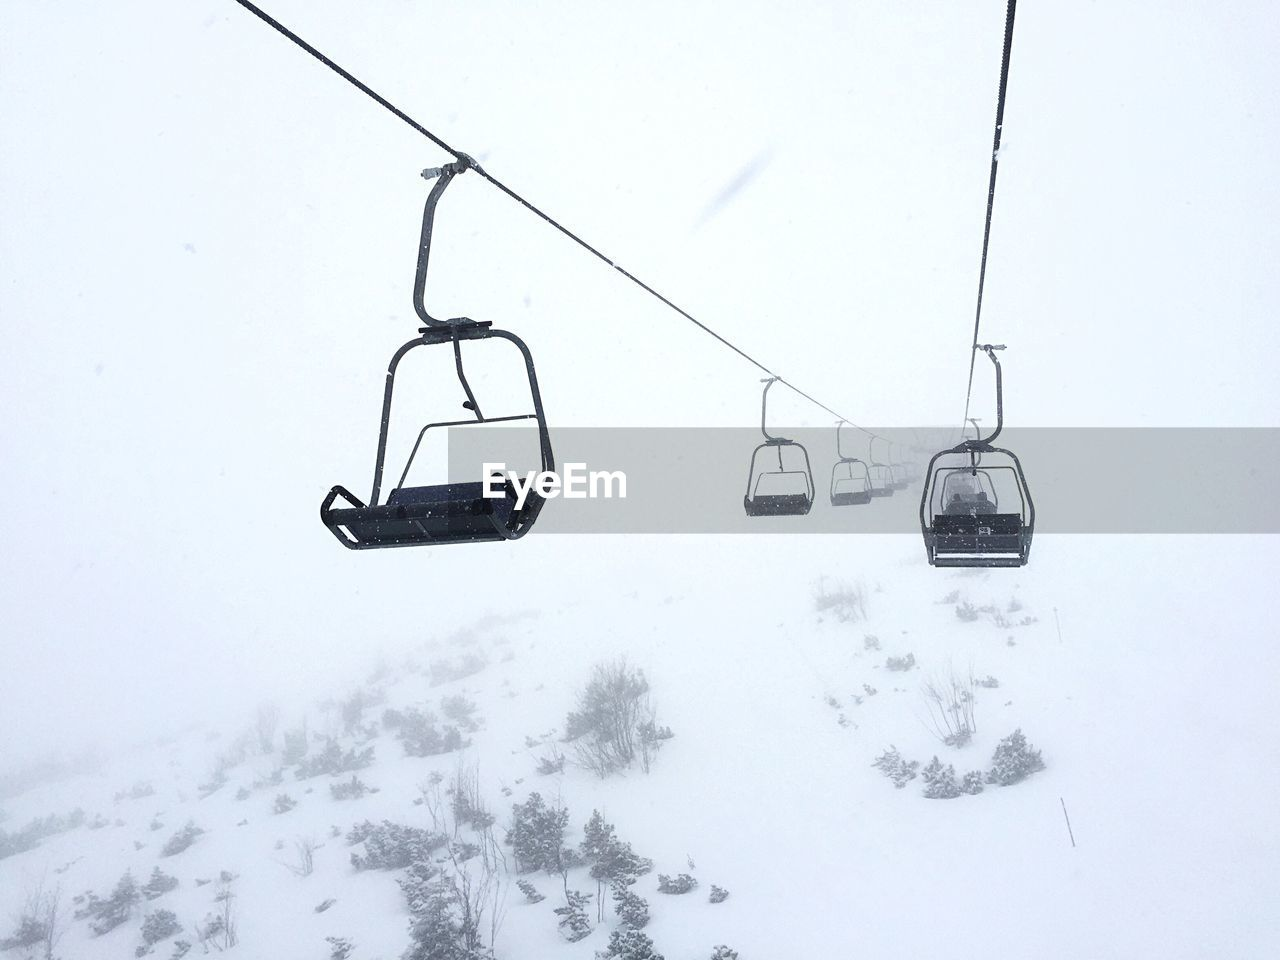 cold temperature, snow, winter, ski lift, cable car, overhead cable car, nature, transportation, land, scenics - nature, sky, mode of transportation, day, field, no people, beauty in nature, white color, fog, hanging, outdoors, snowcapped mountain, snowing